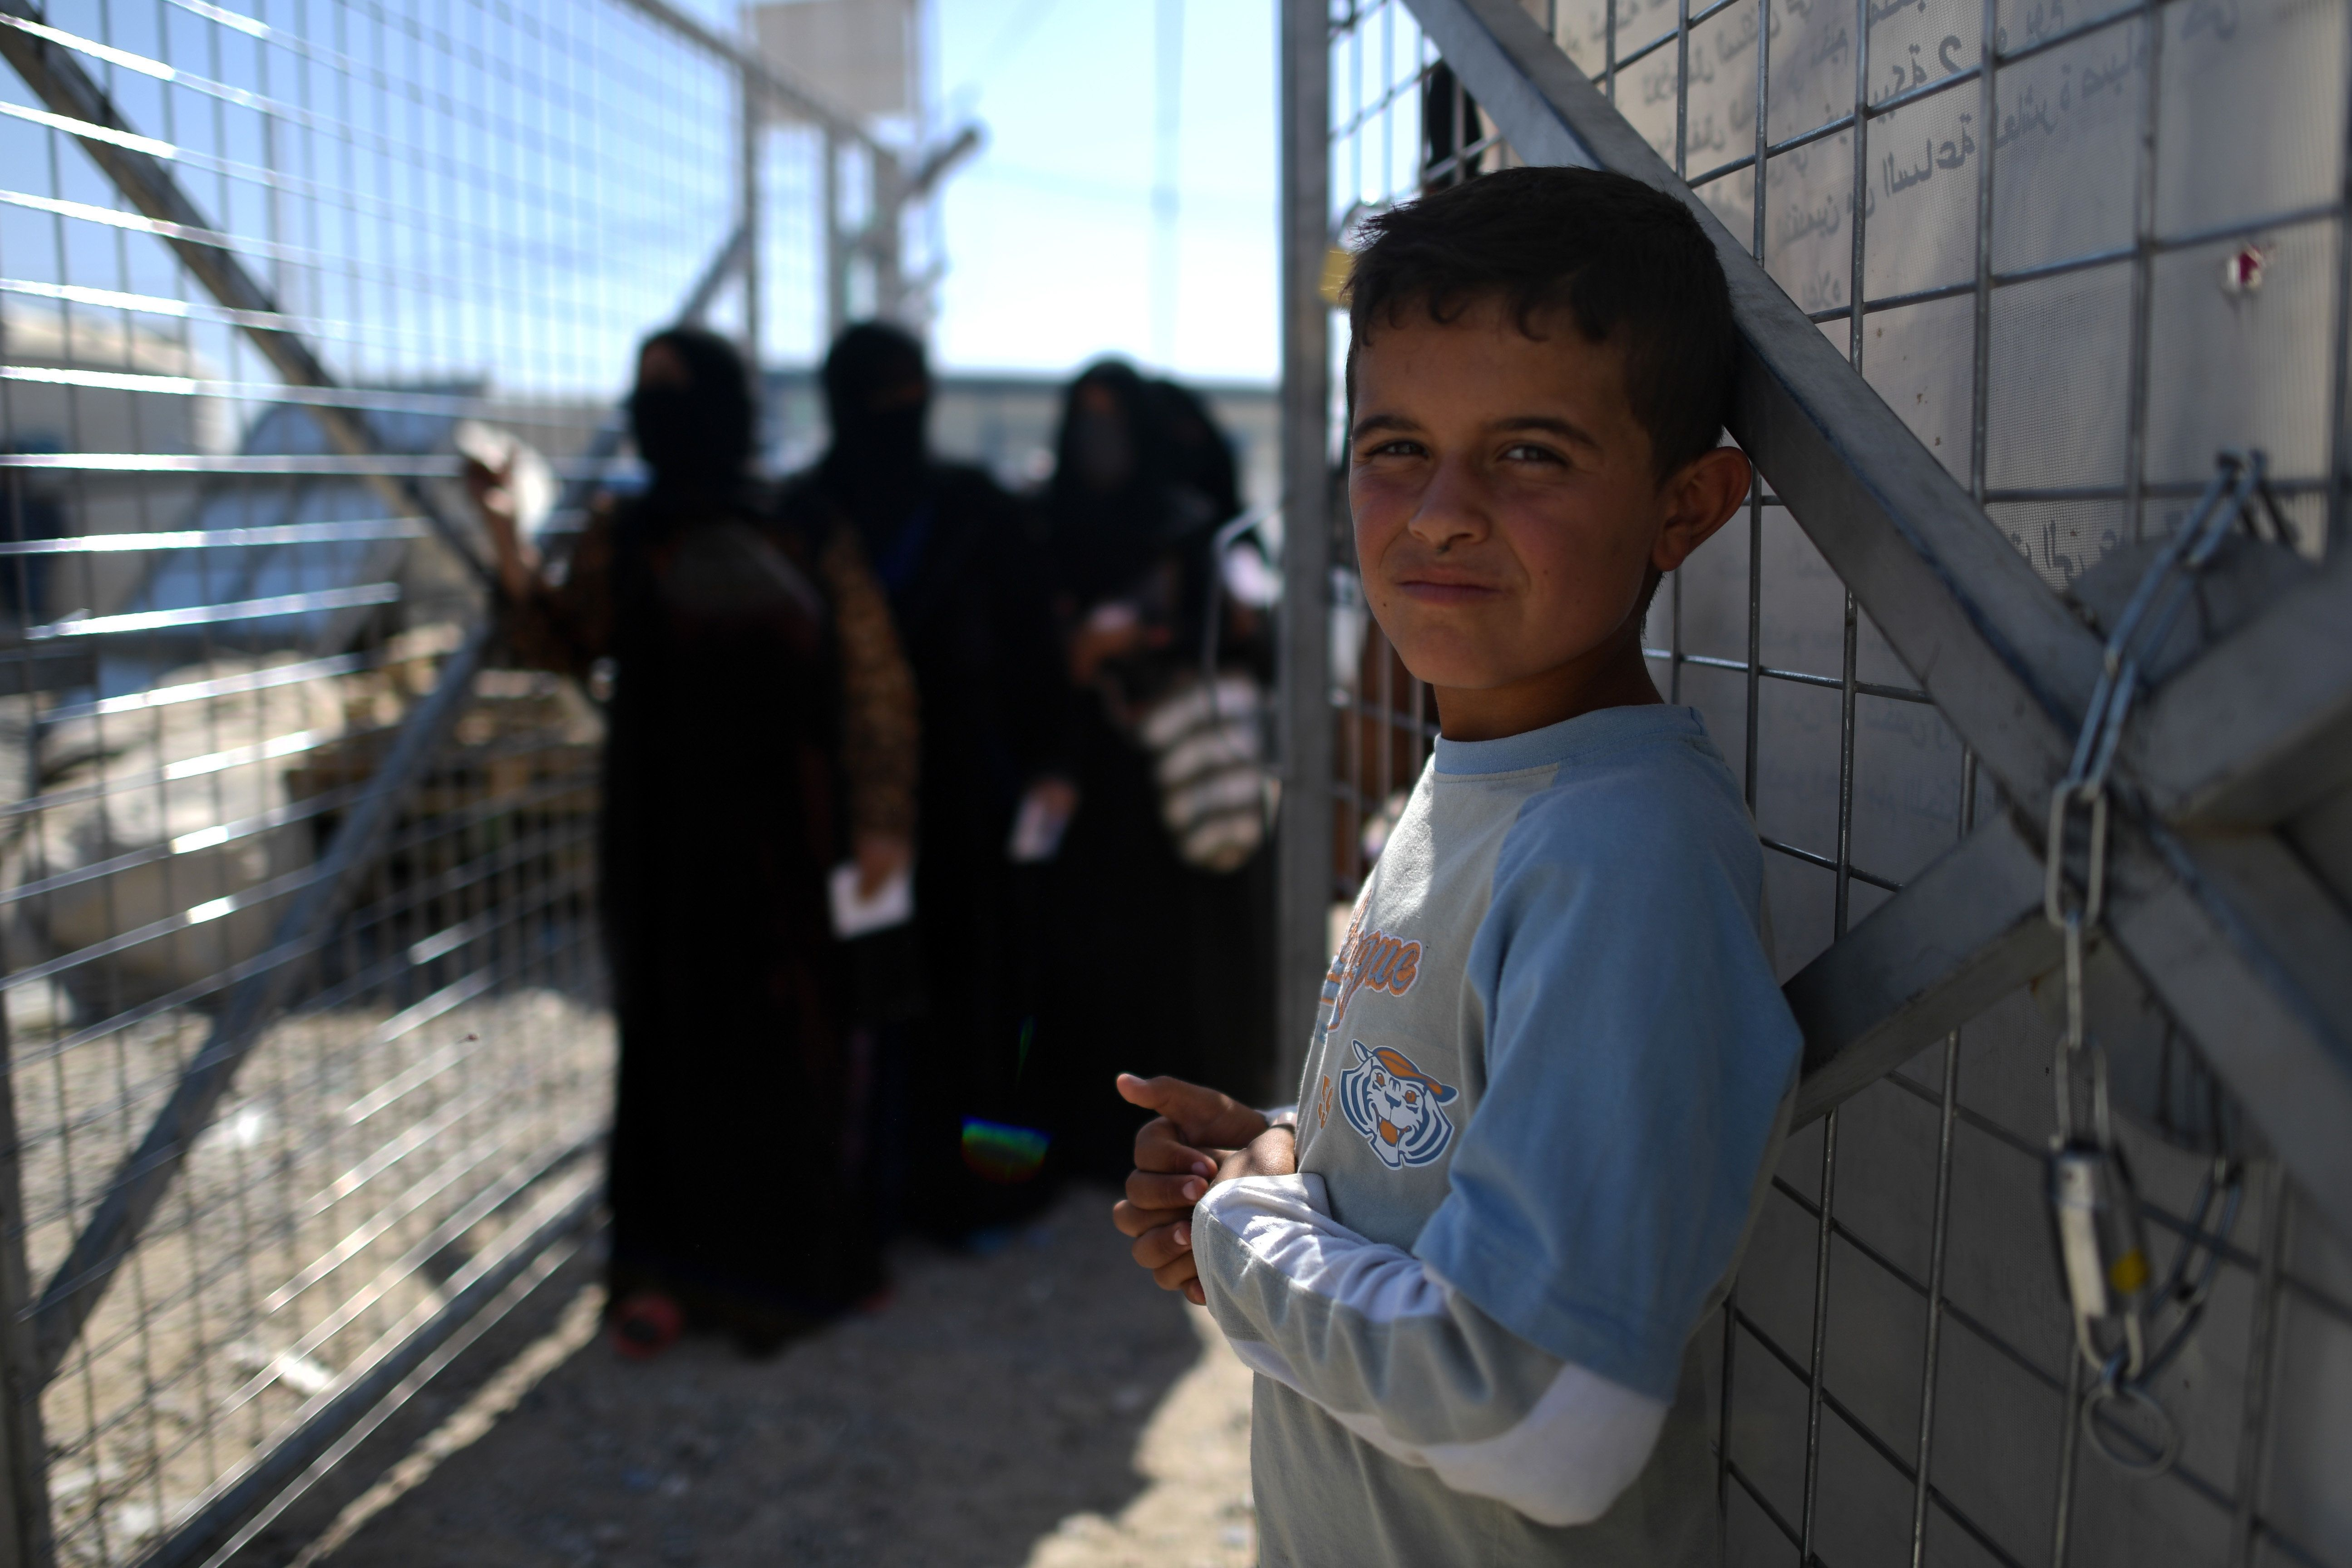 Civilians Fleeing Through ISIS Minefields Face Detention, Prison-Like Conditions In Northern